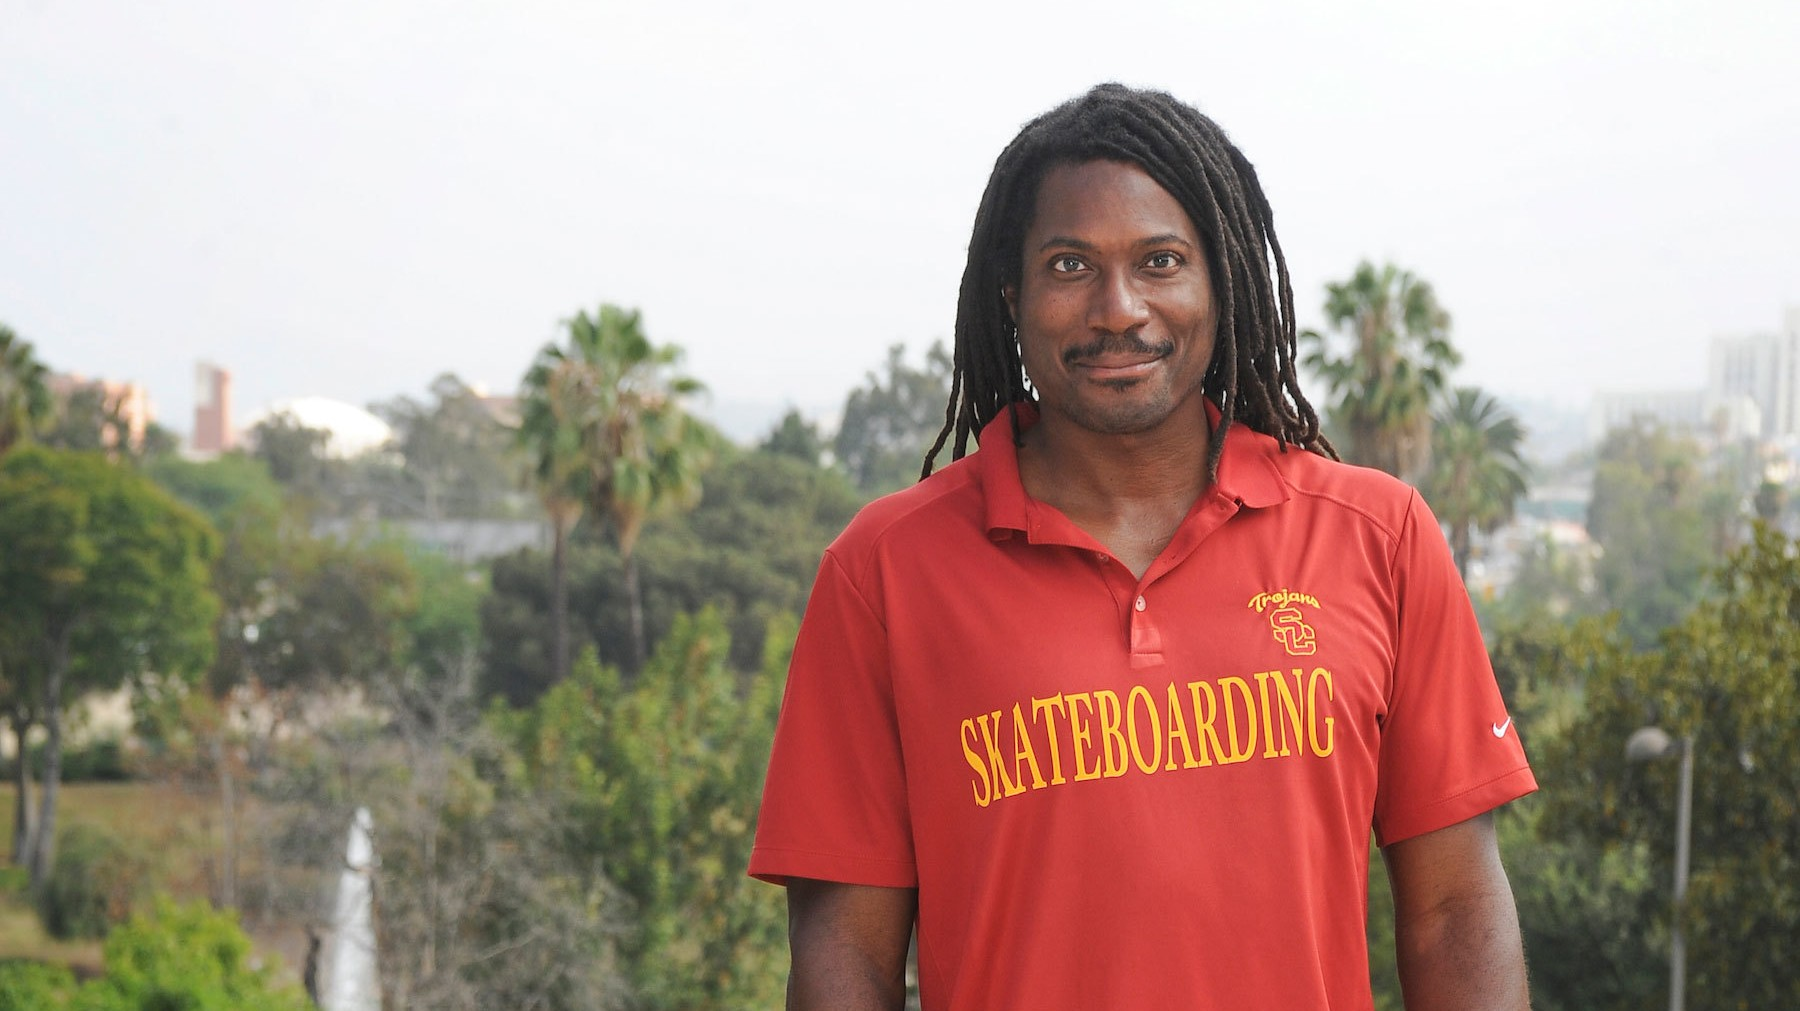 Meet the USC Professor Who Wants to Solve the World's Problems with Skateboarding